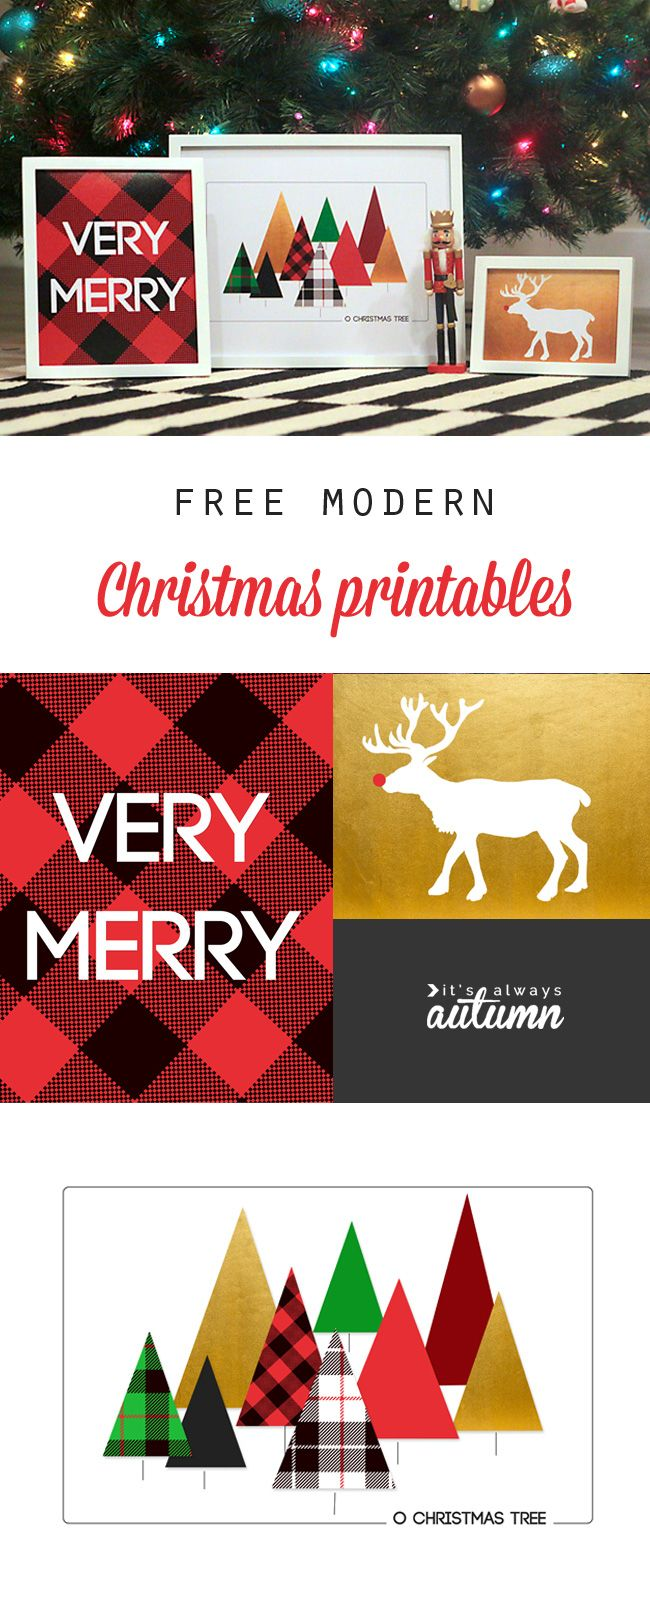 Modern Christmas Printables It S Always Autumn Free Christmas Printables Modern Christmas Christmas Printables